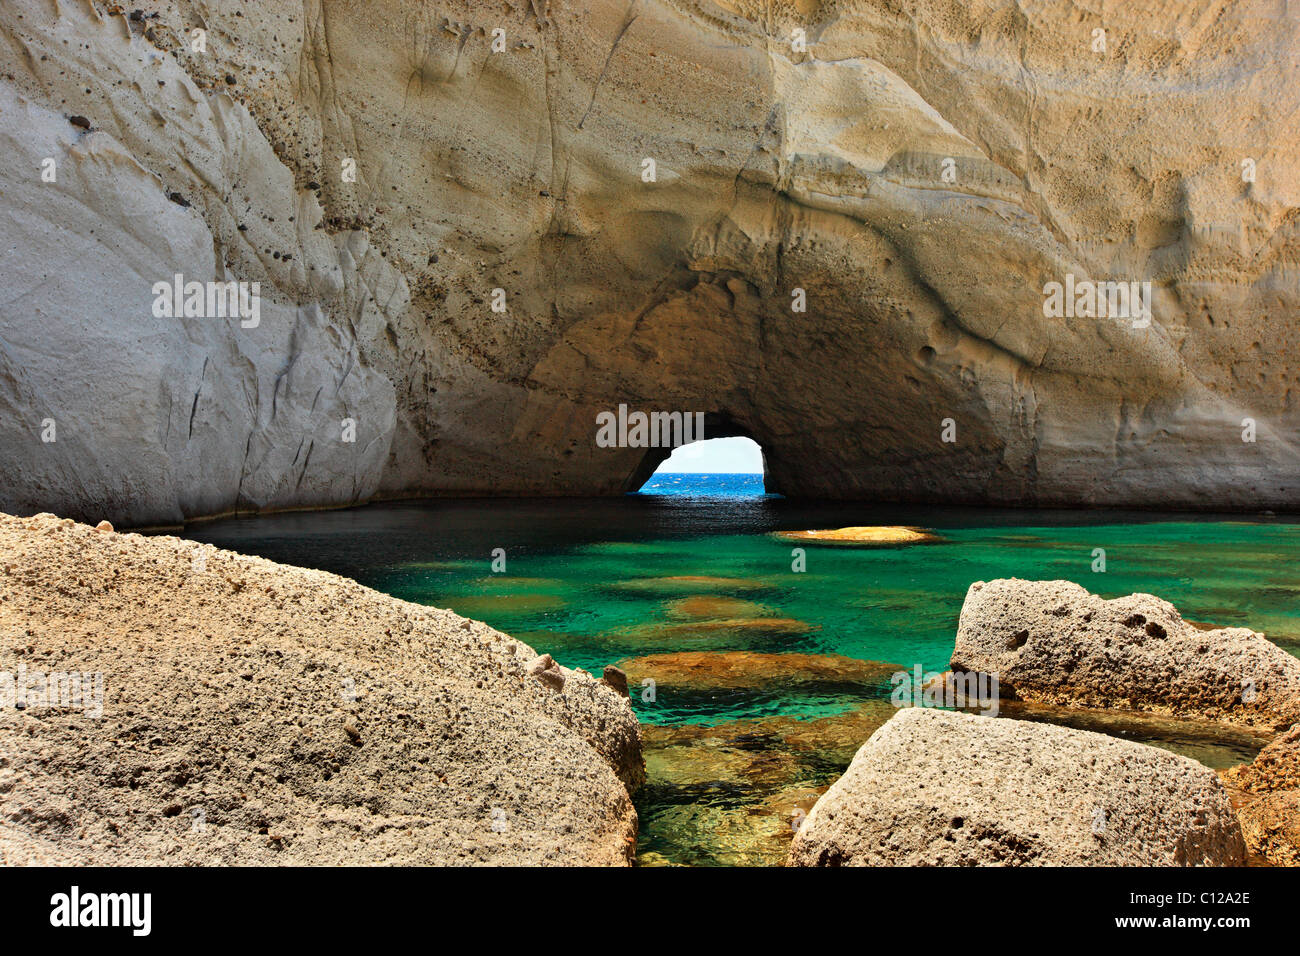 The sea cave of Sykia in Milos island, Cyclades, Greece. - Stock Image